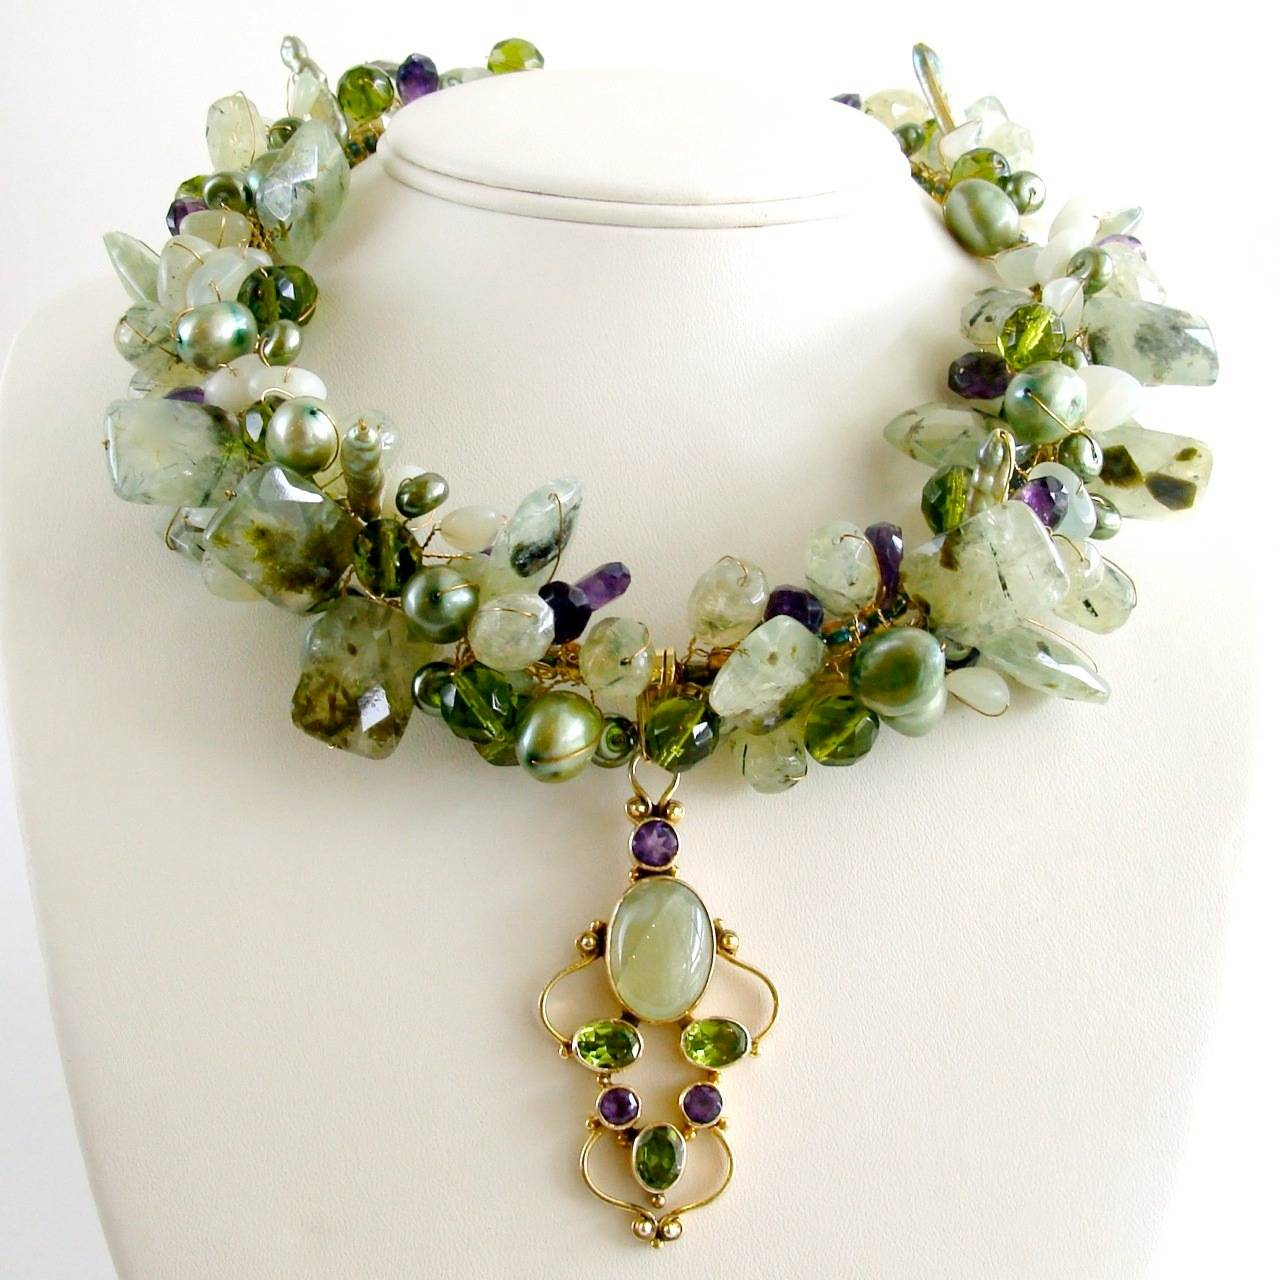 Peridot Grossular Garnet Choker Necklace - Amethyst Pearls New Jade 2